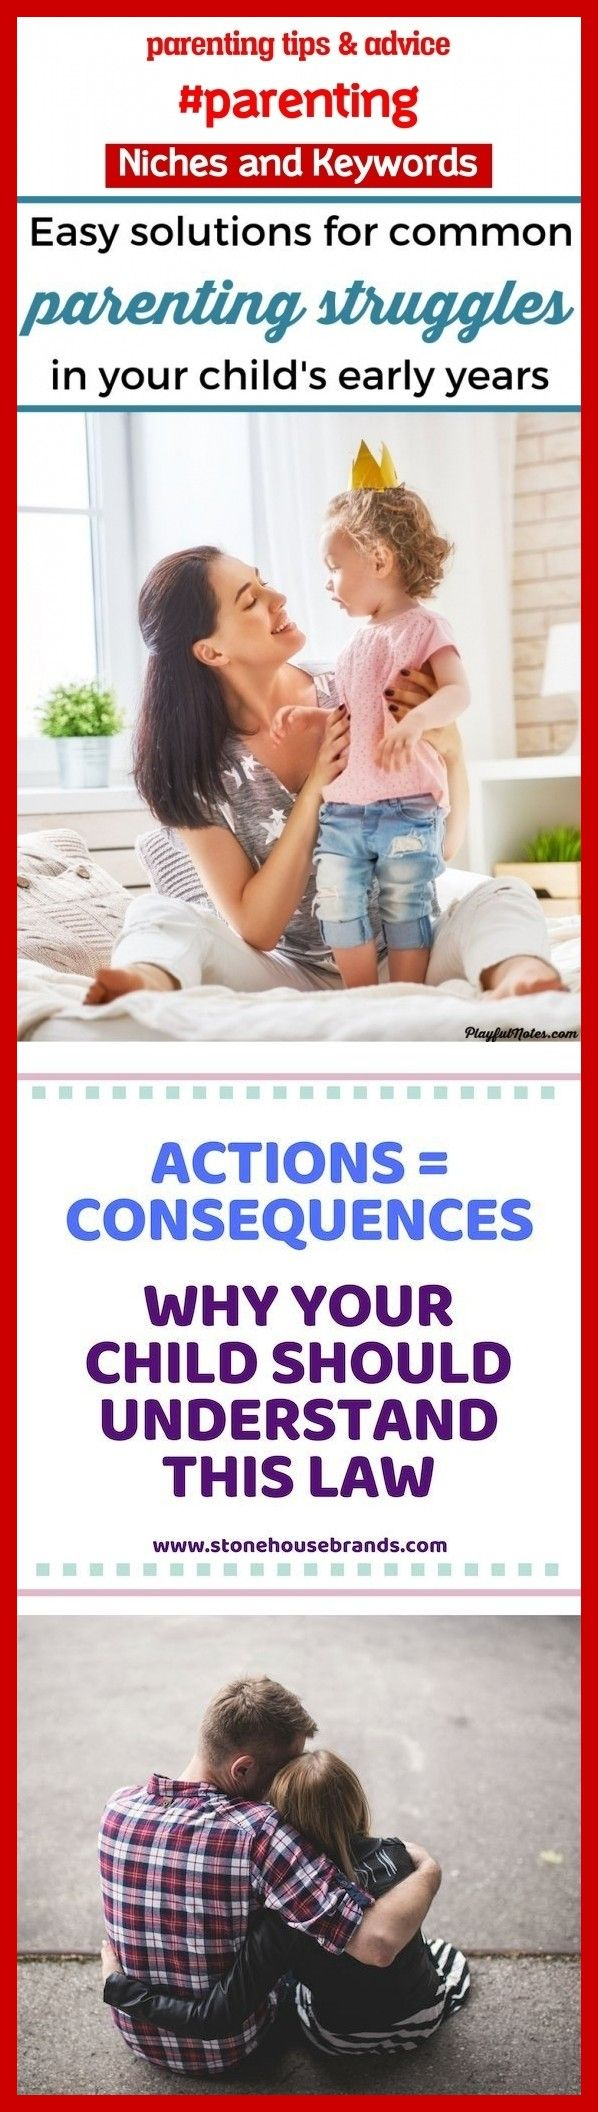 Photo of Parenting tips & advice #parenting #seo #seo2020 #kids. parenting tips for toddl…